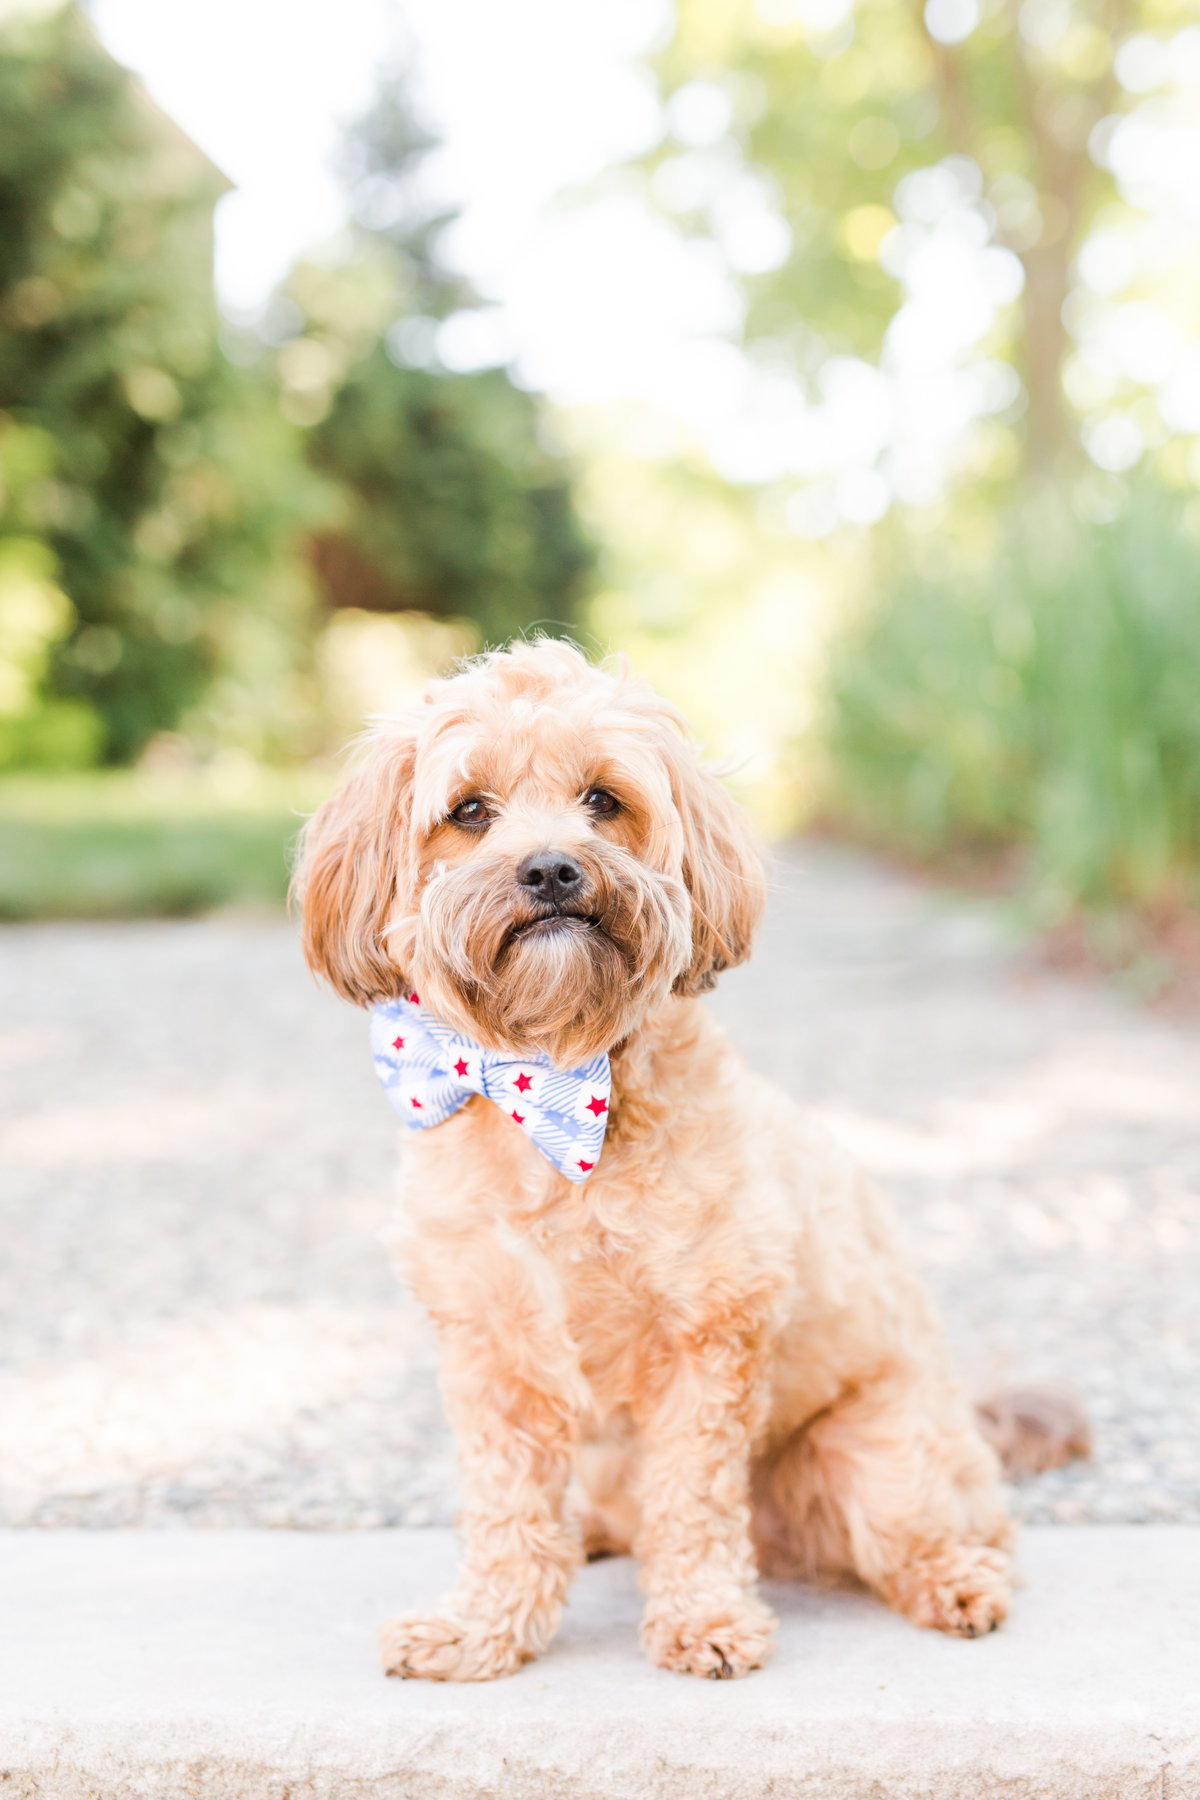 Brown Shihpoo puppy wearing fourth of July bow tie